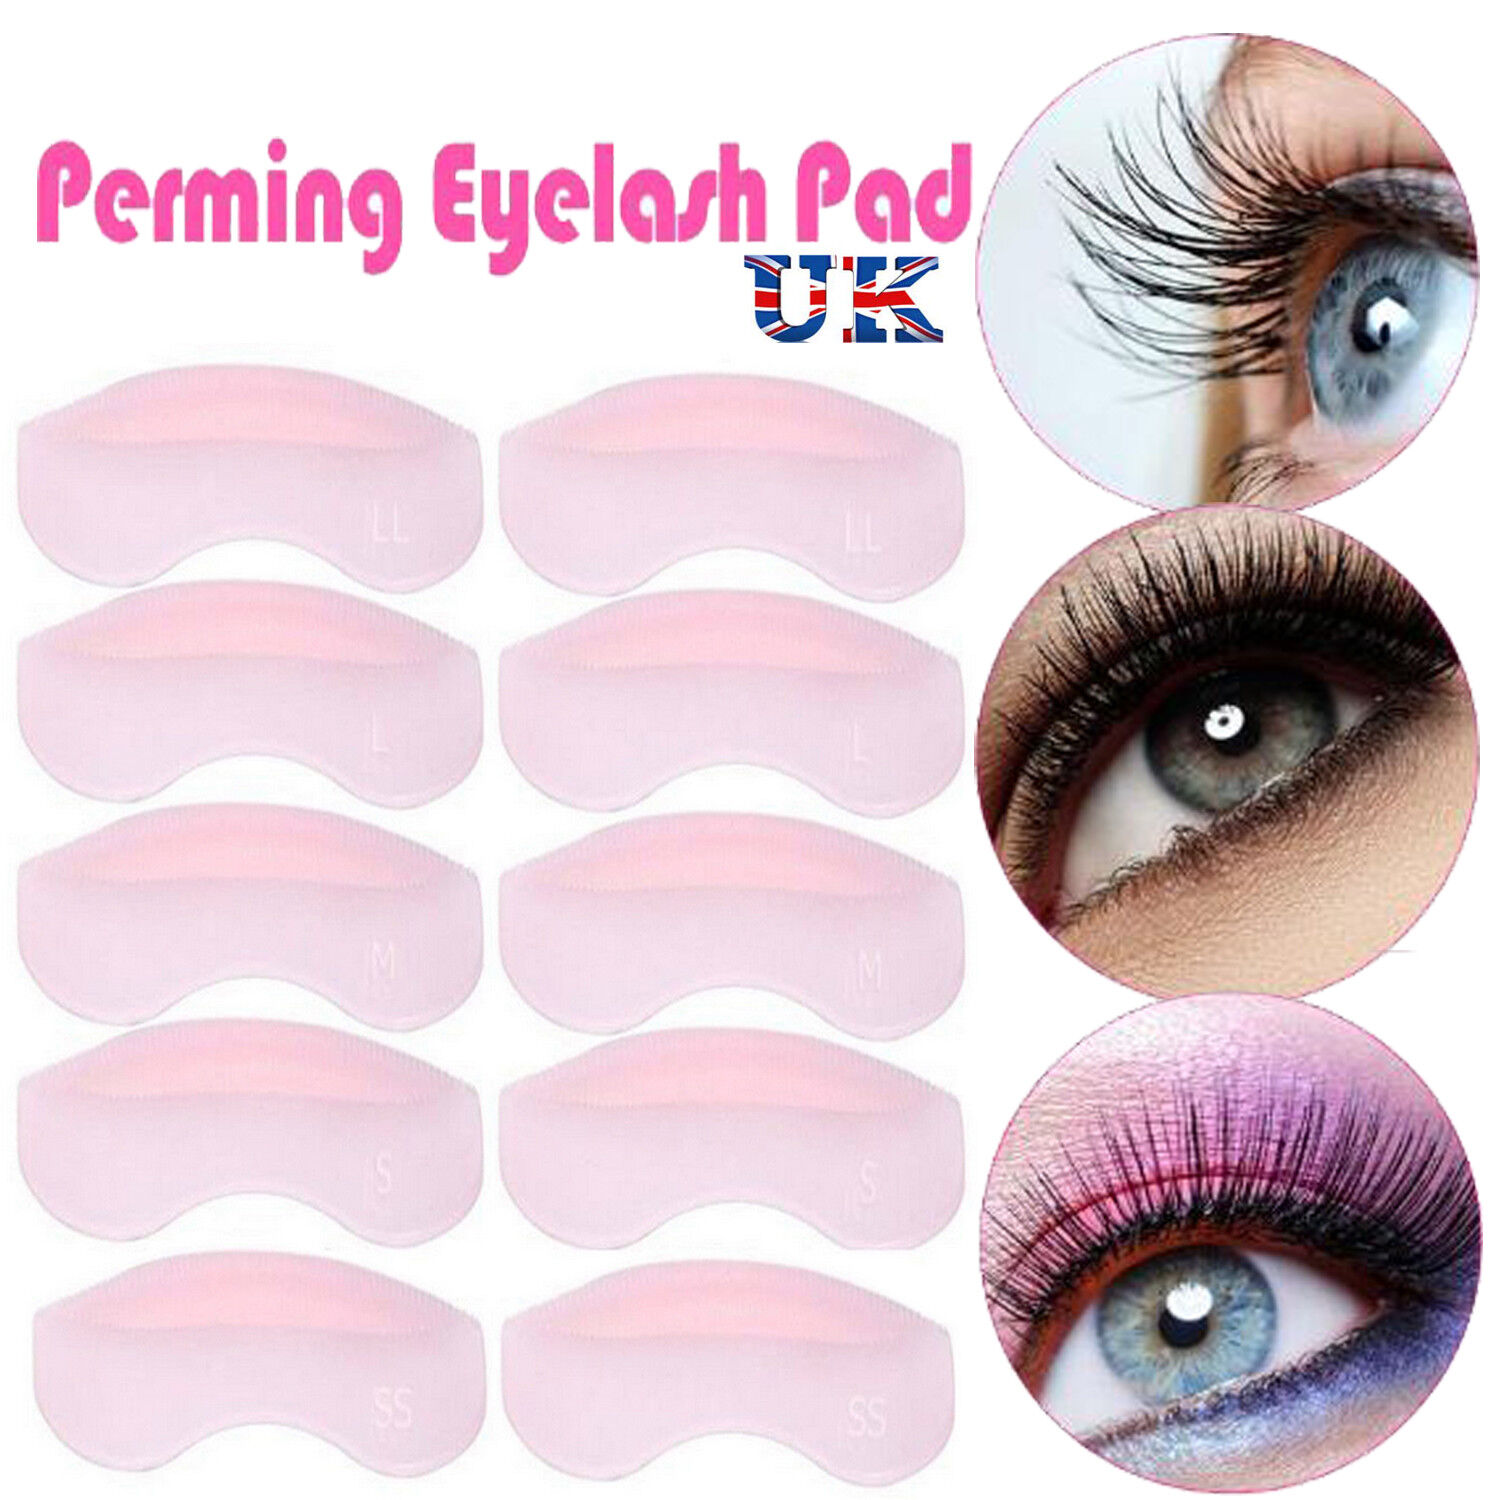 Galaxy Beauty 5 Pairs Silicone Eyelash Perming Curler Shield Pads